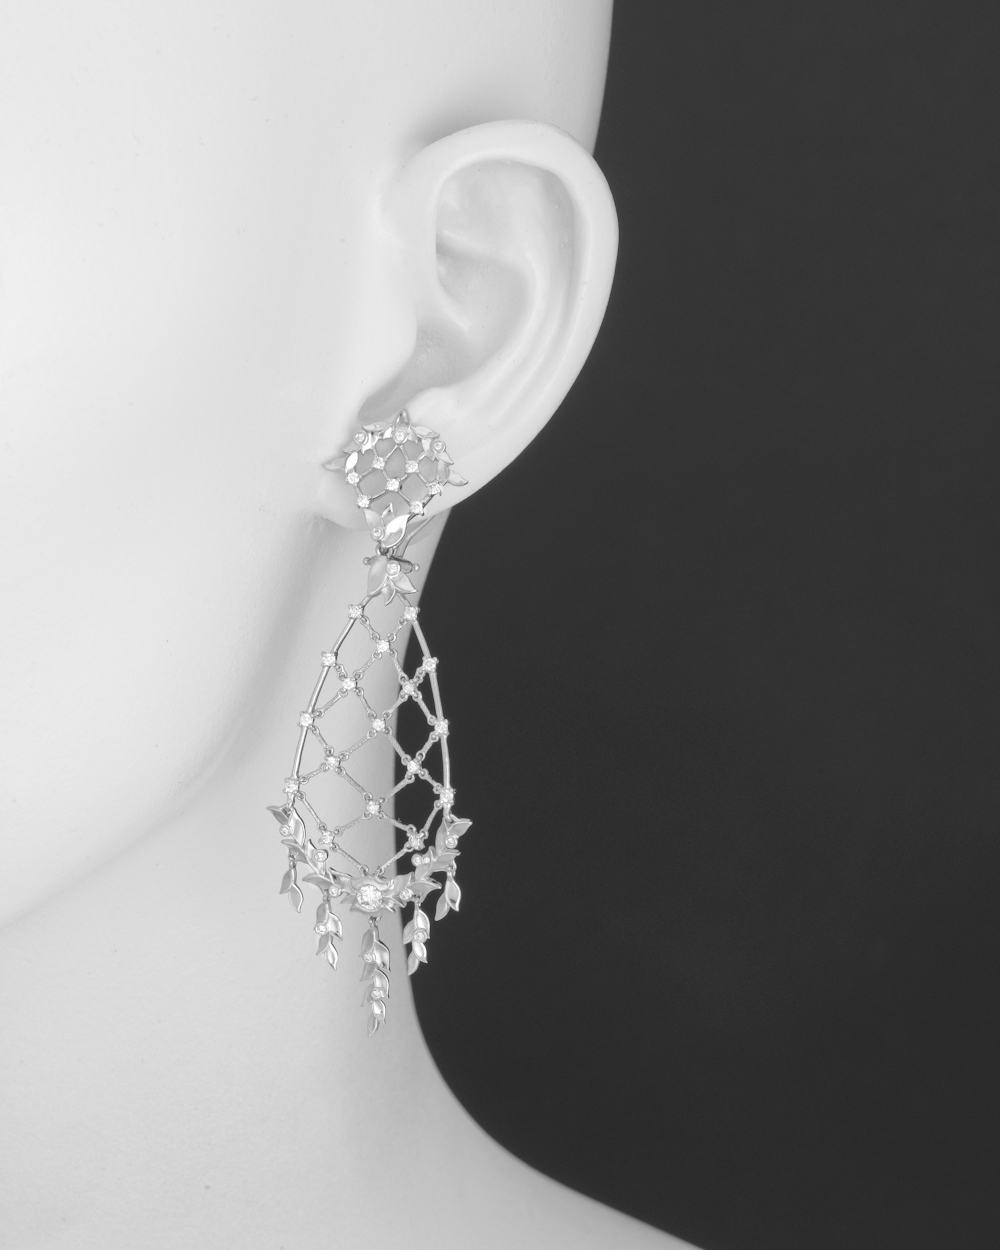 Paul morelli diamond laurel leaf chandelier earrings betteridge laurel leaf flexible chandelier earrings in 18k white gold with round cut diamonds and clip top 112 total carats of diamonds clip backs with posts aloadofball Choice Image